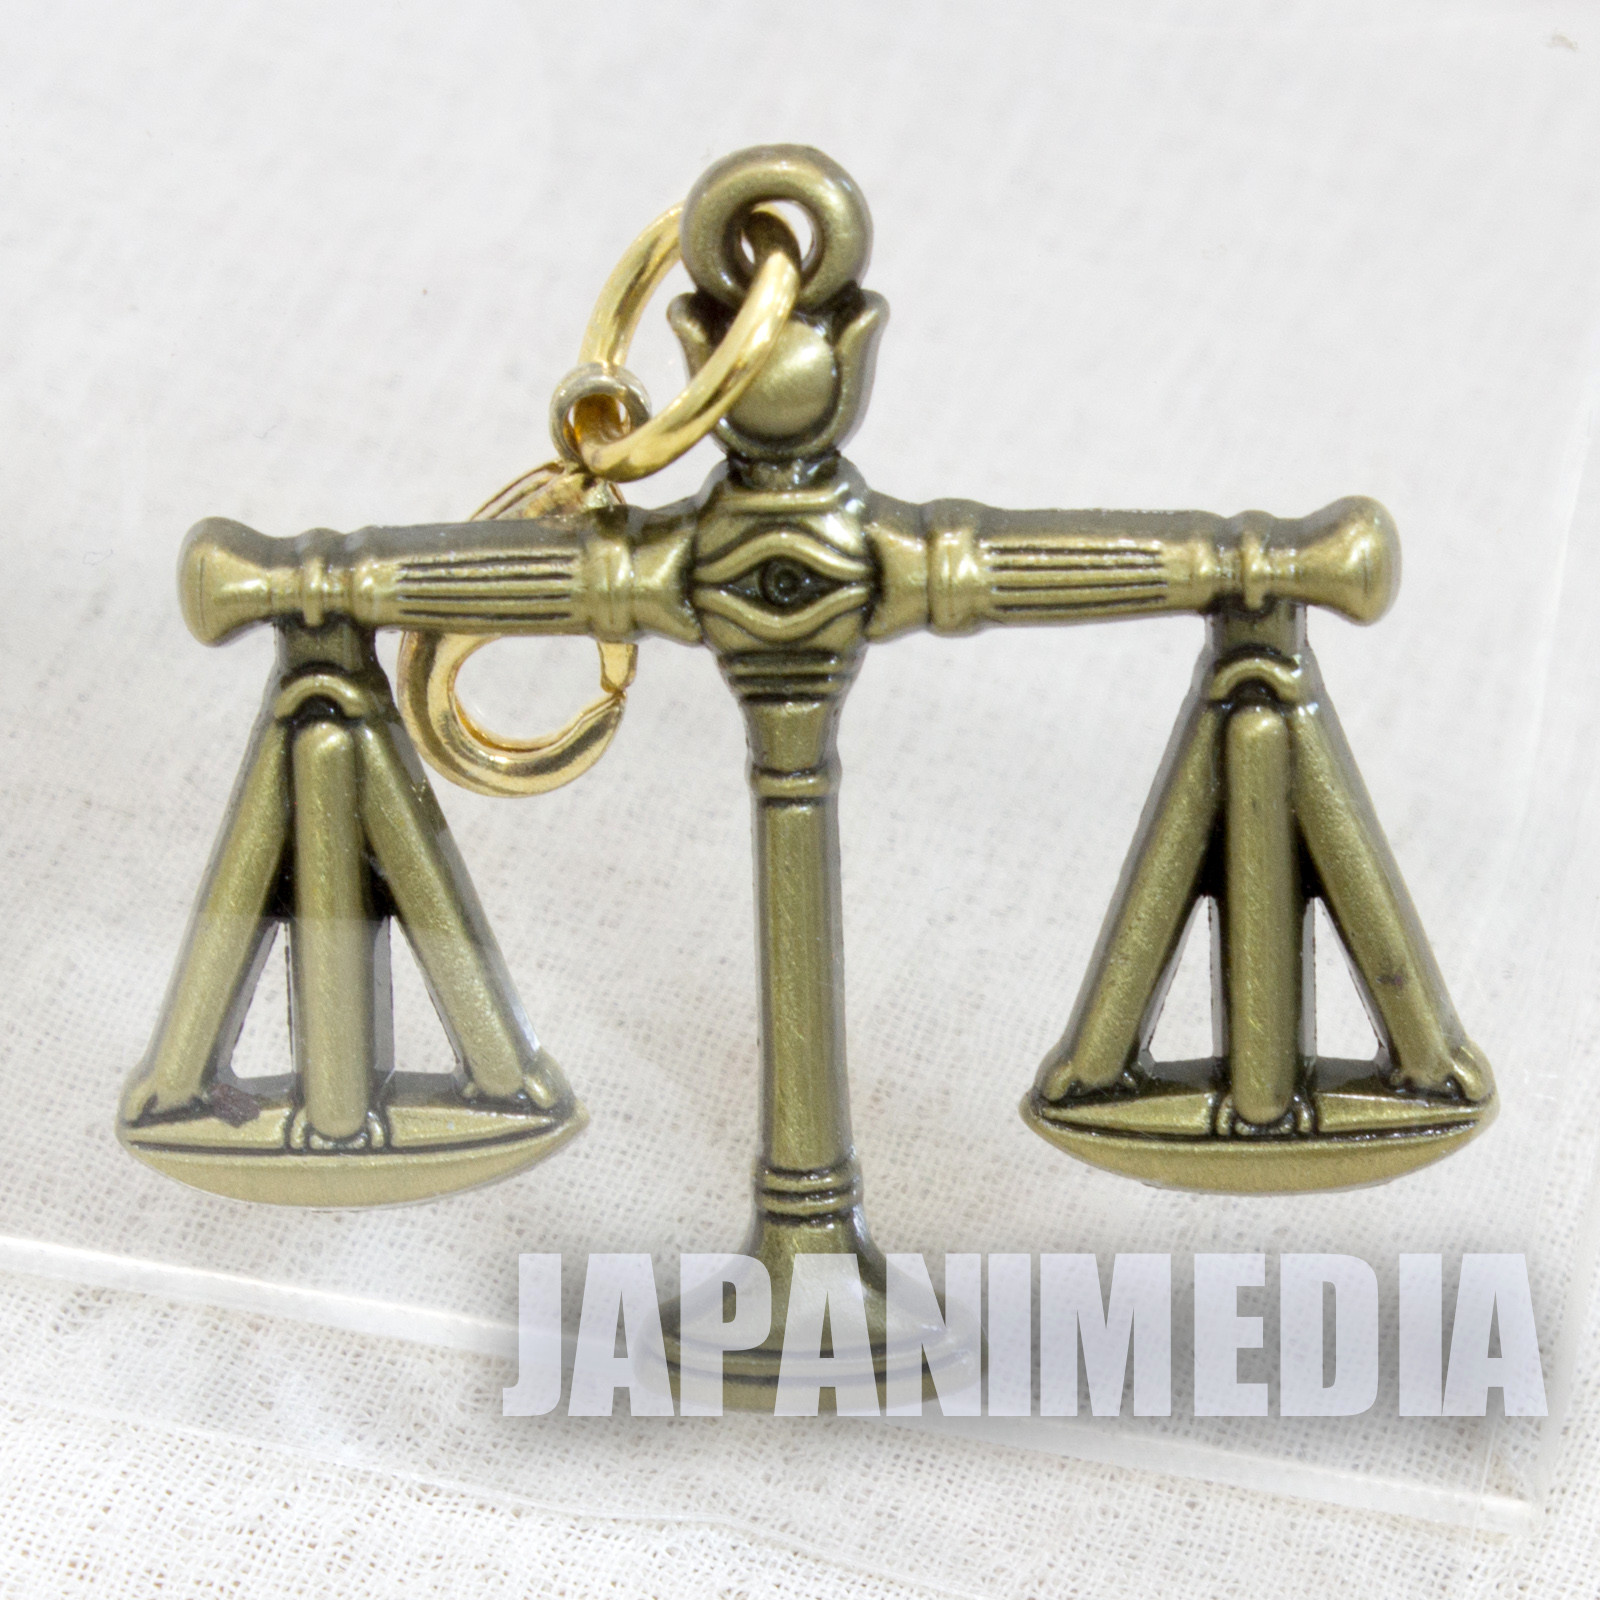 Yu-Gi-Oh! Millenium Scales 20th Millenium item Metal charm collection [2] JAPAN ANIME